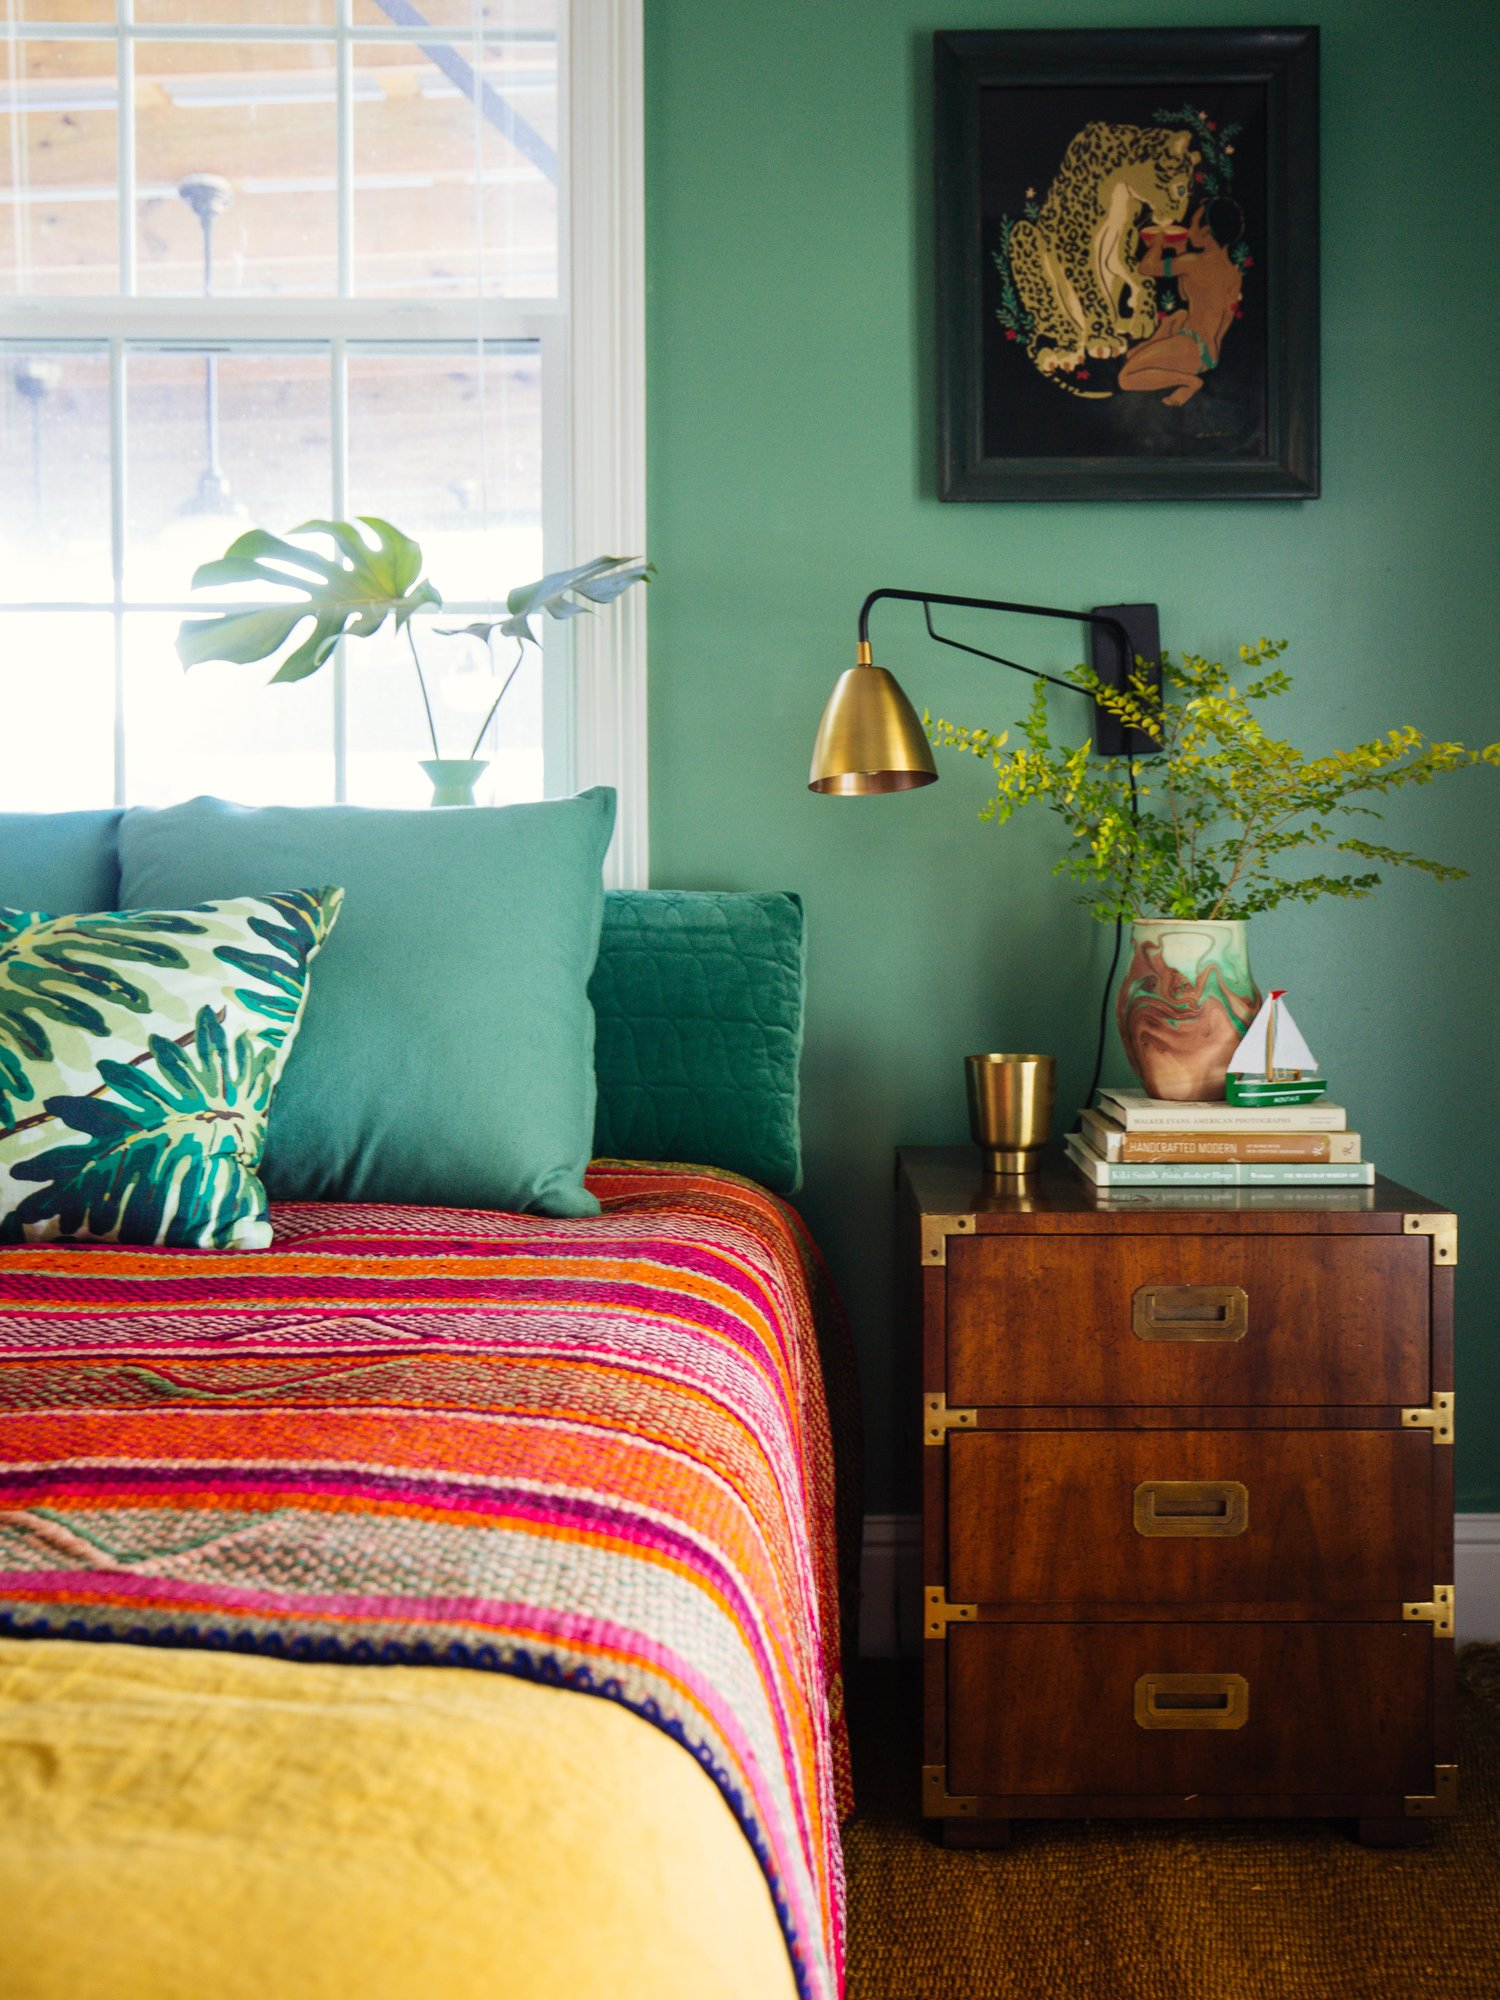 12 Easy Ways To Make Your Bedroom Look Insta-Worthy! – The Urban Guide